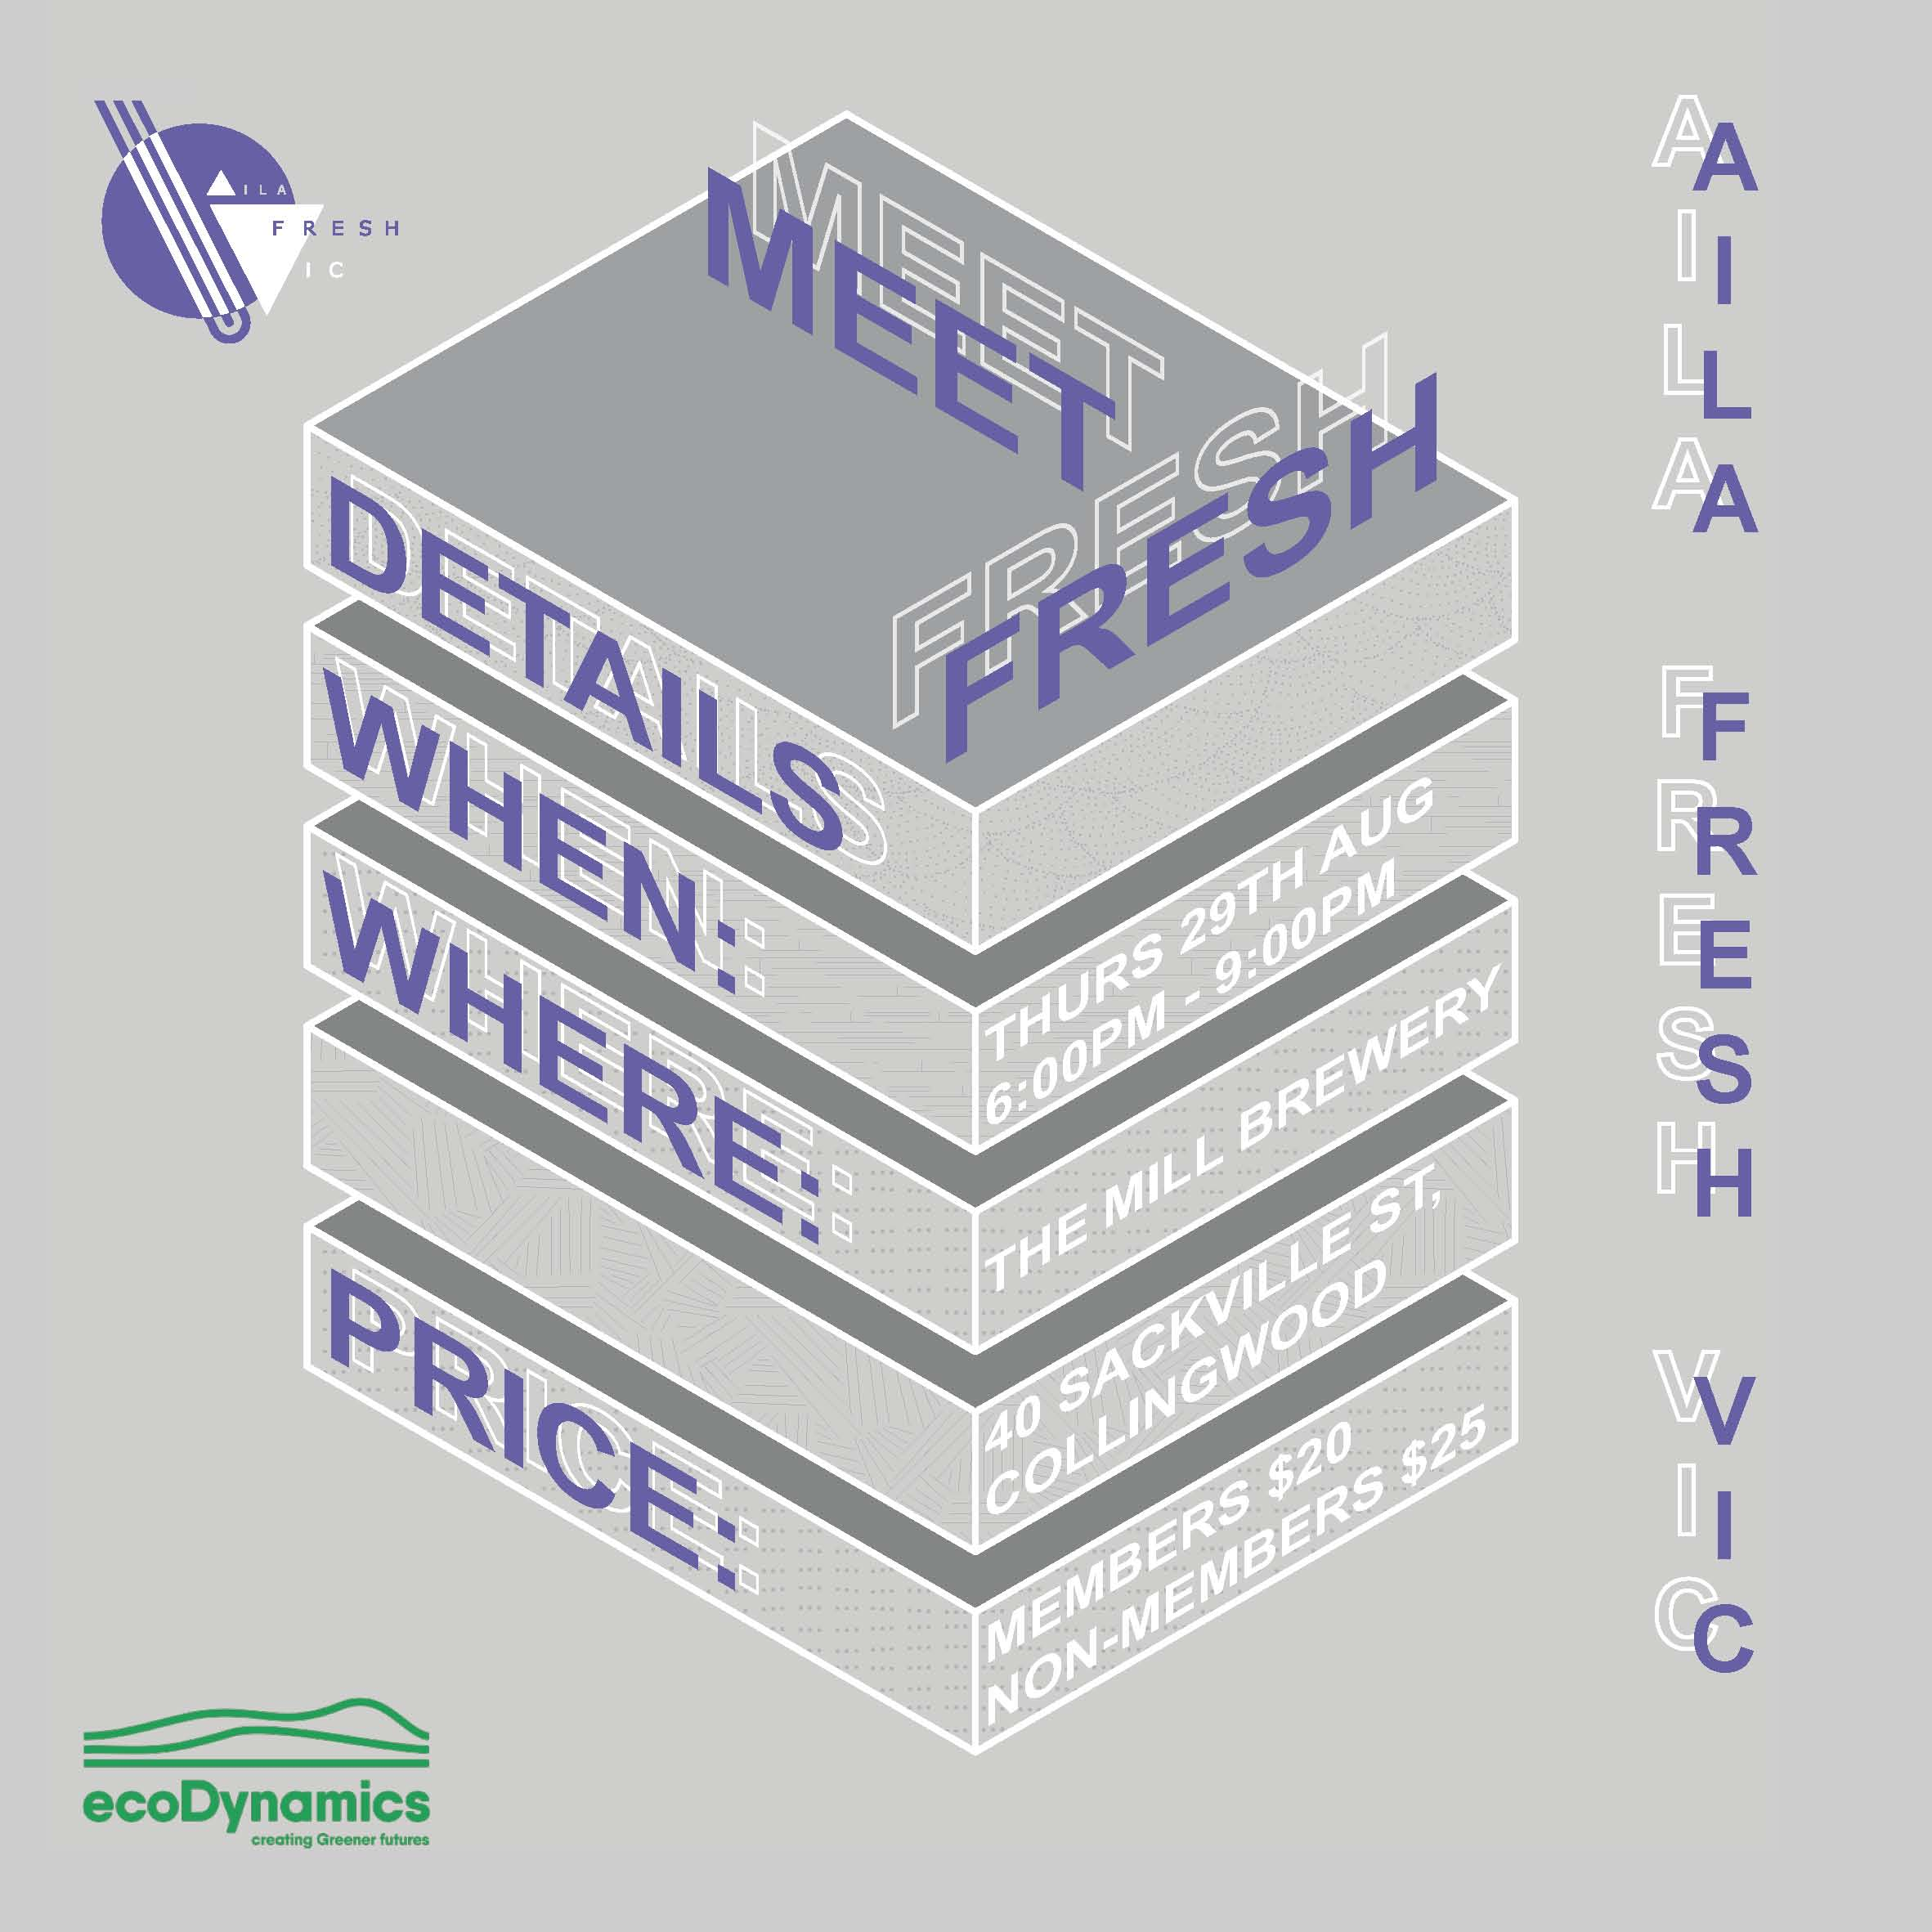 VIC AILA FRESH Meet 2019 - SOLD OUT